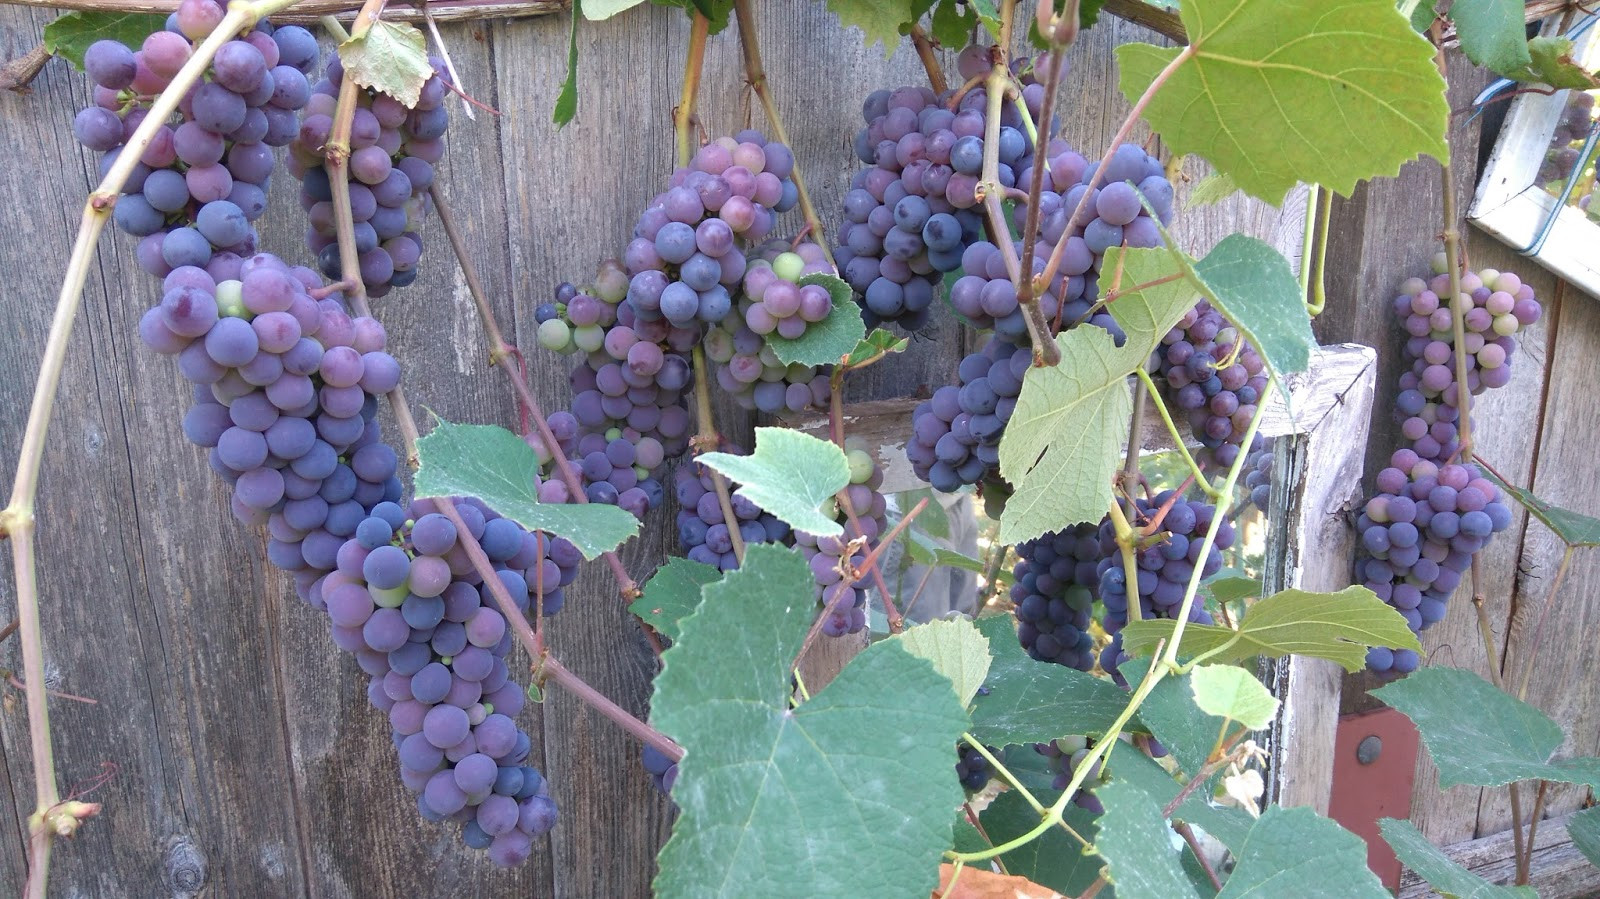 Growing Grapes In Backyard  motherkerala How to grow grapes in your backyard